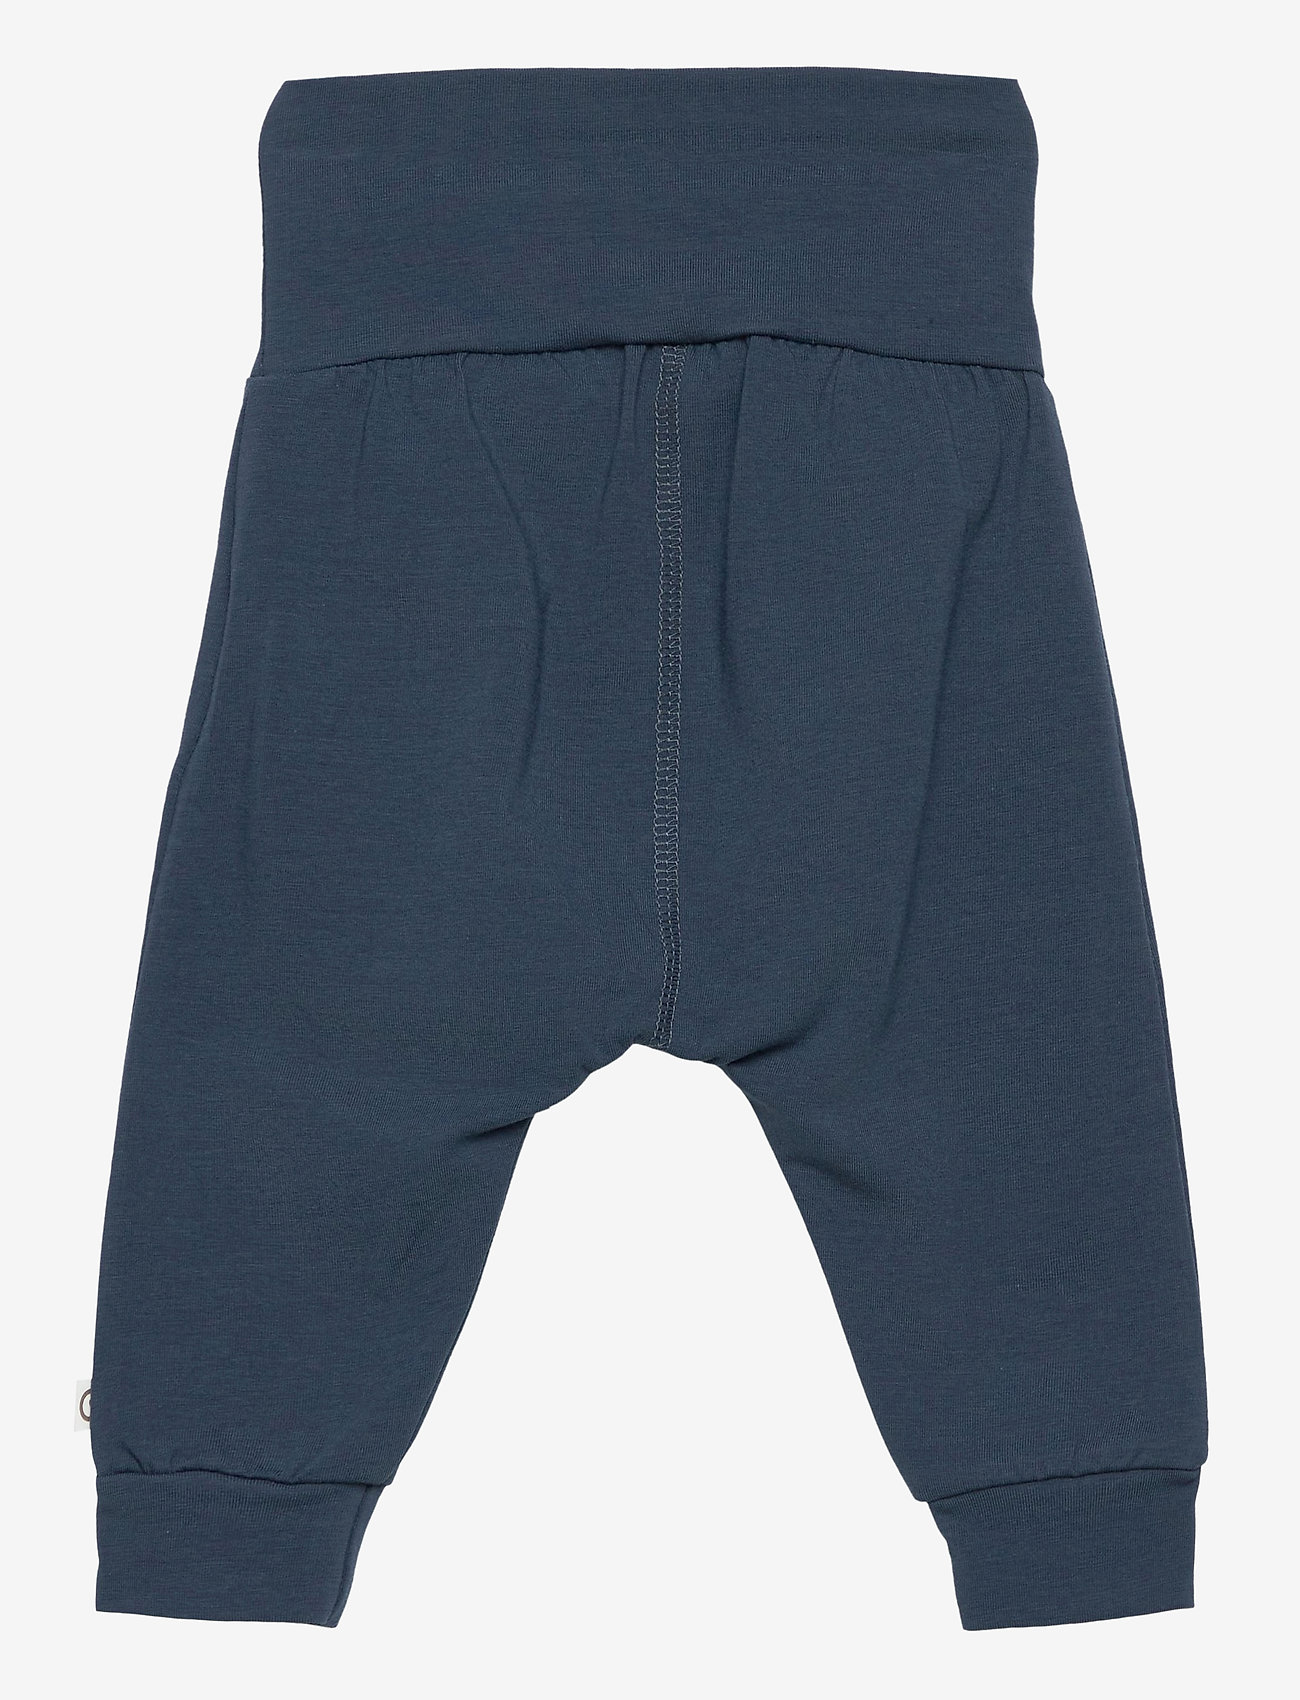 Müsli by Green Cotton - Cozy me pants - trousers - midnight - 1